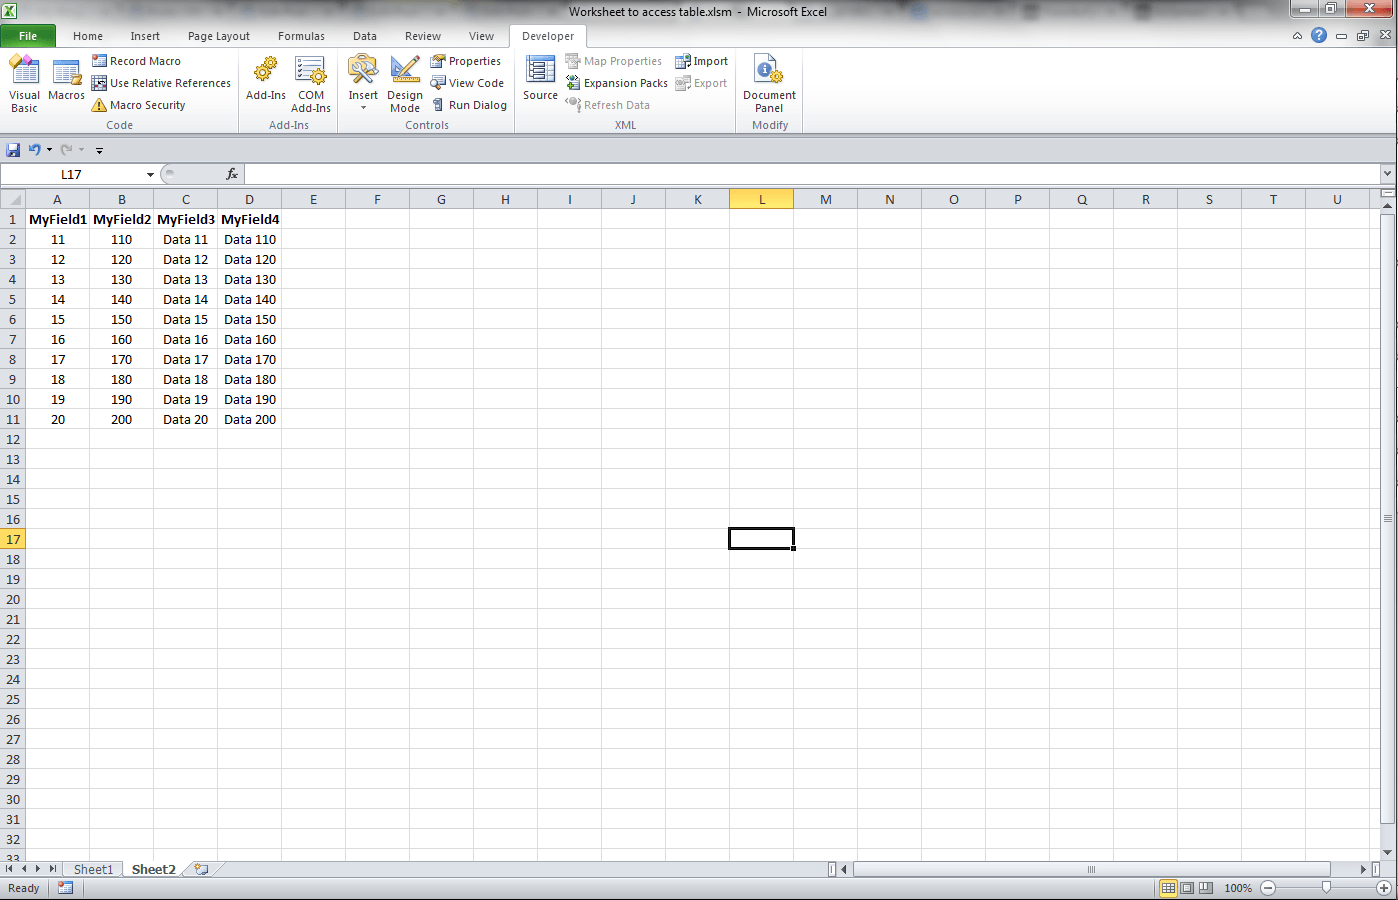 Access Vba Import Excel Worksheet To Existing Table